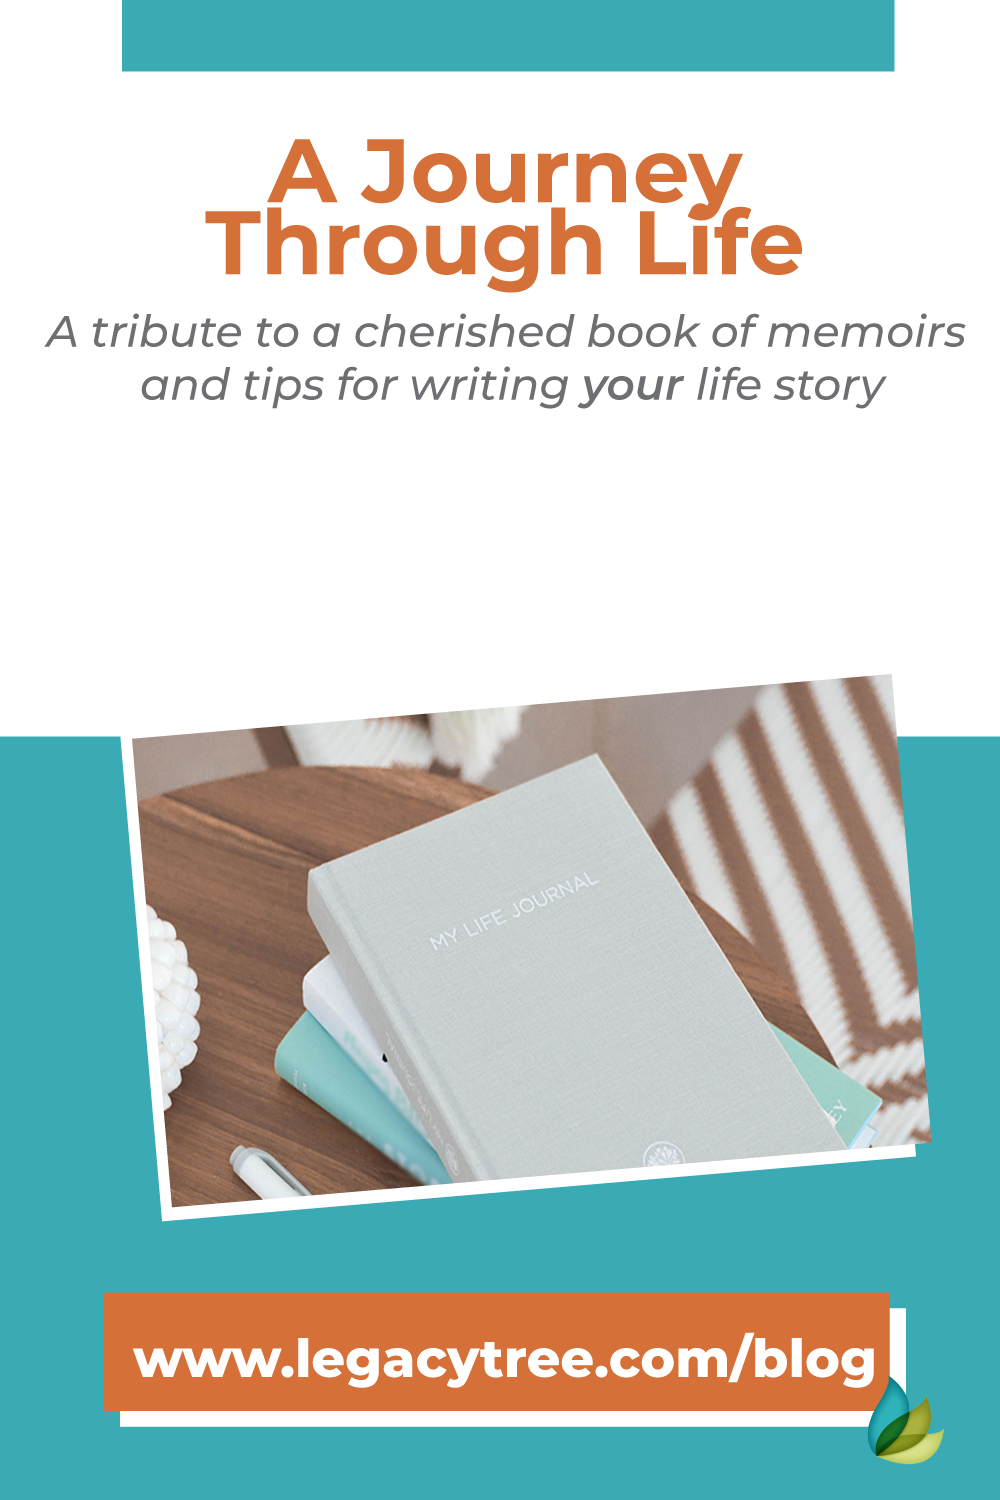 One of our genealogists shares a tribute to her father-in-law and the cherished book of memoirs he created. We also share tips for writing your life story.